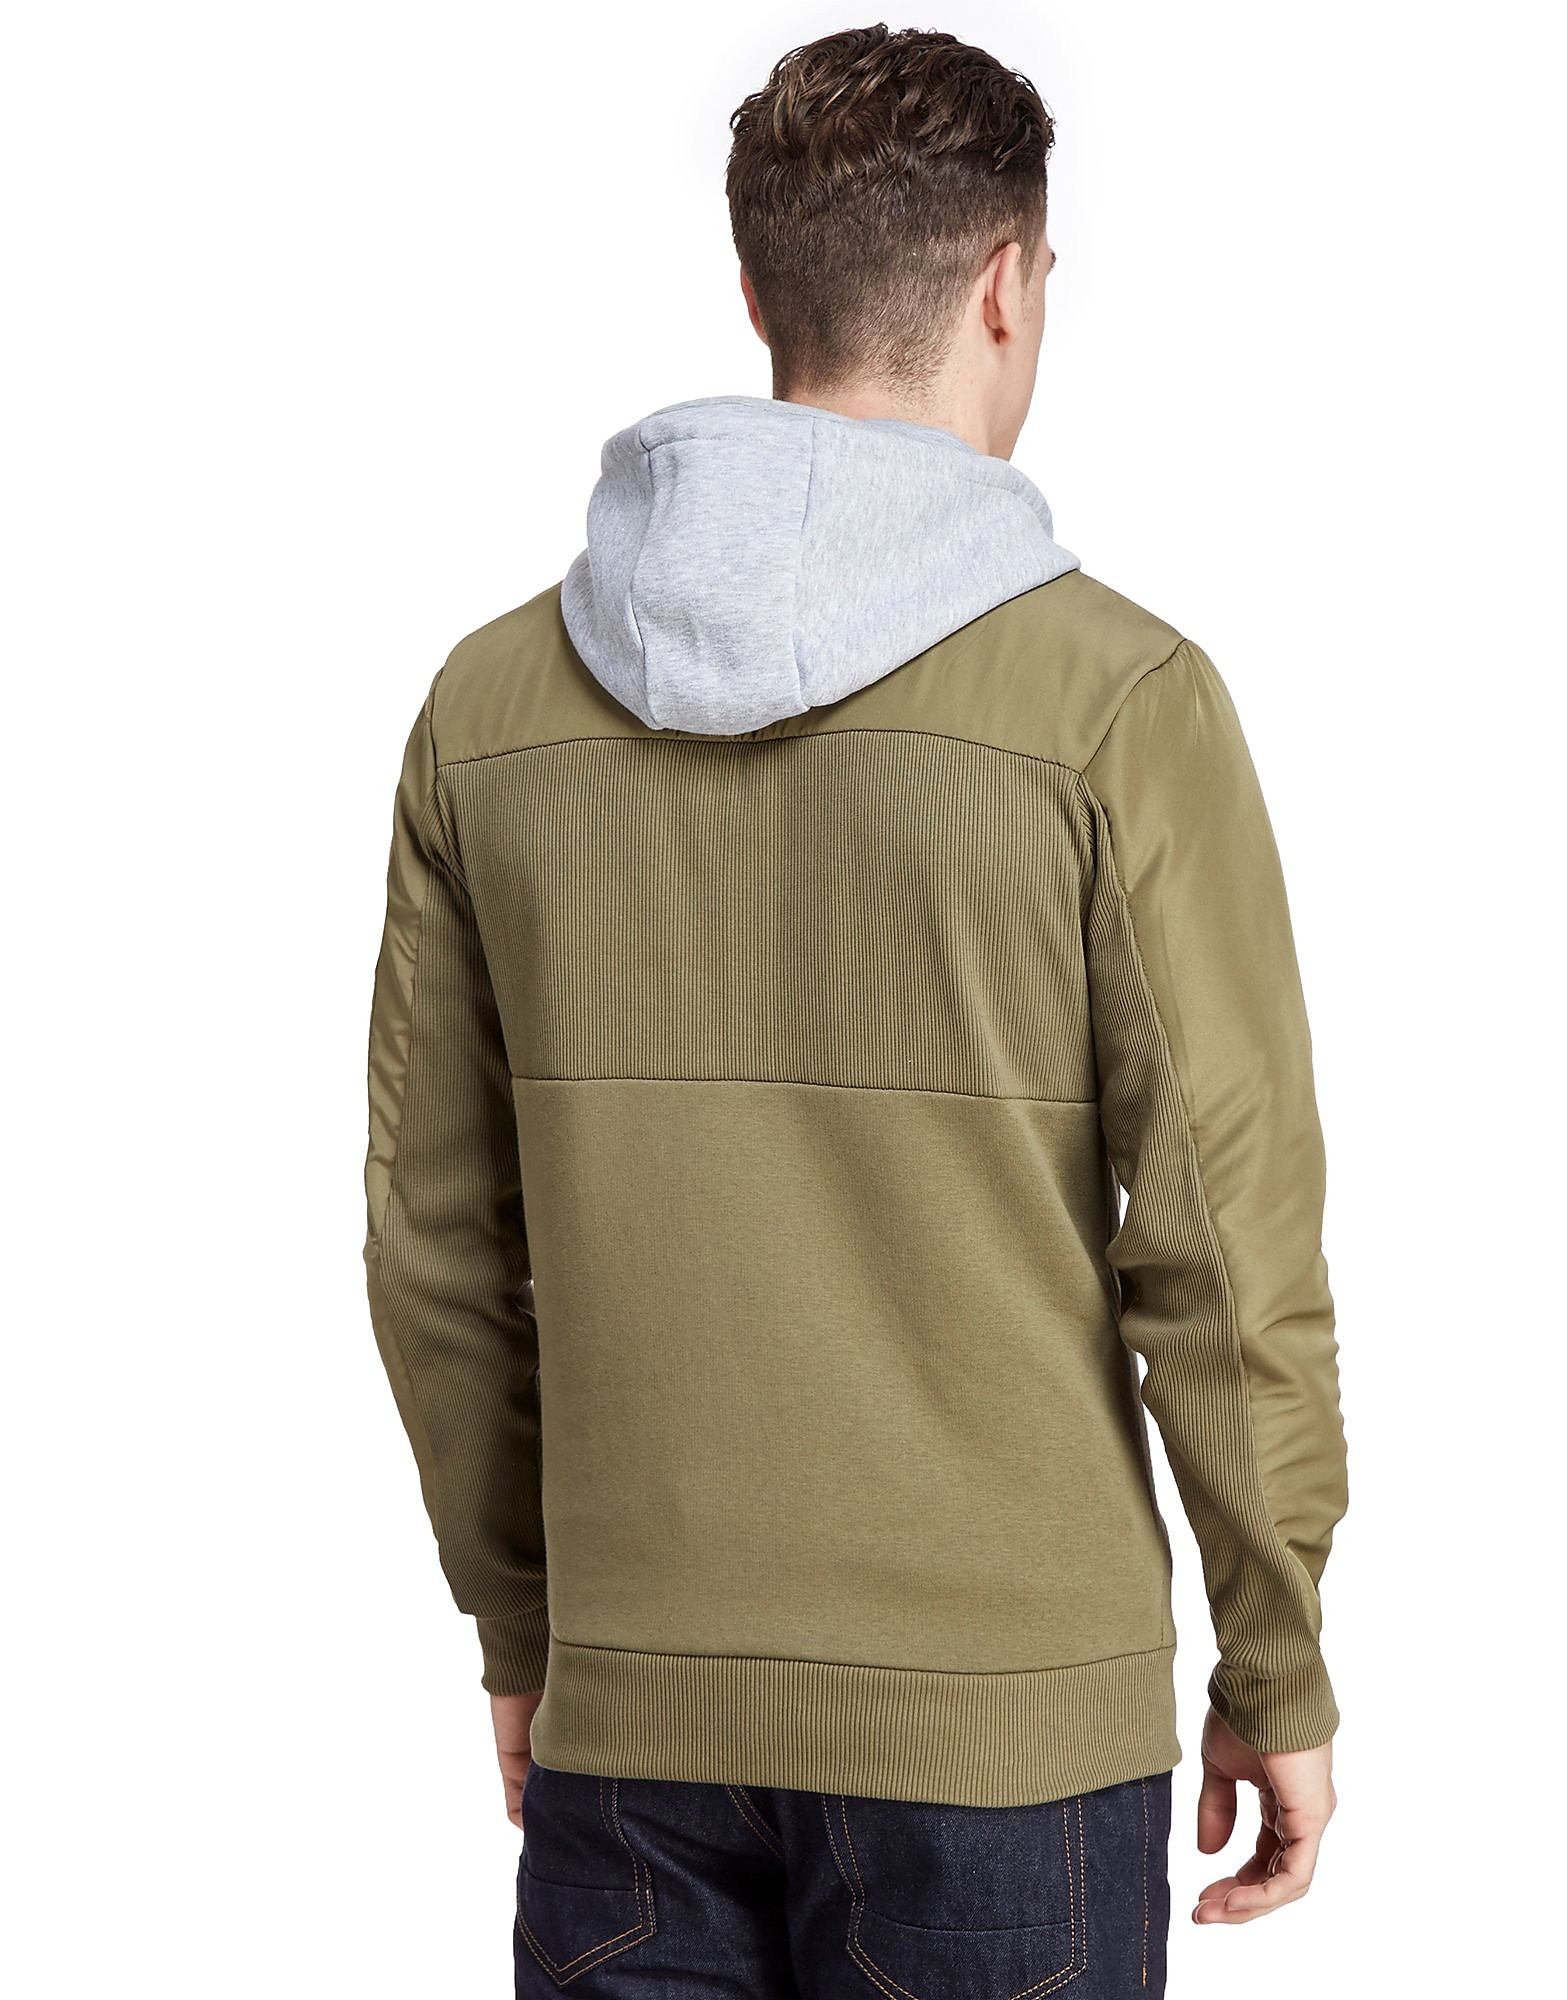 Nanny State Stealth Zip Up Hoody